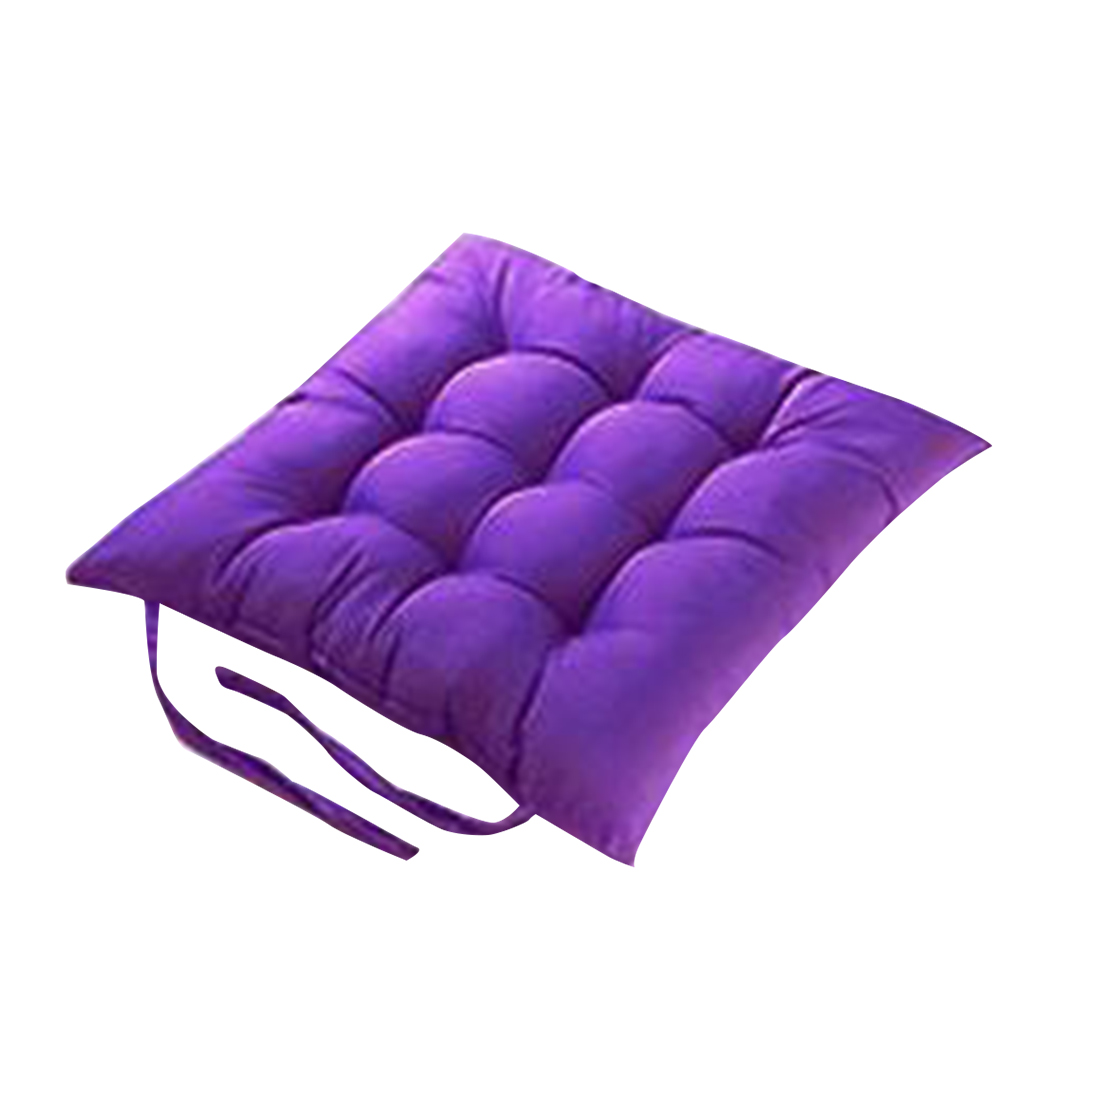 Urijk Solid Color Seat Cushion Square Floor Cushion Soft